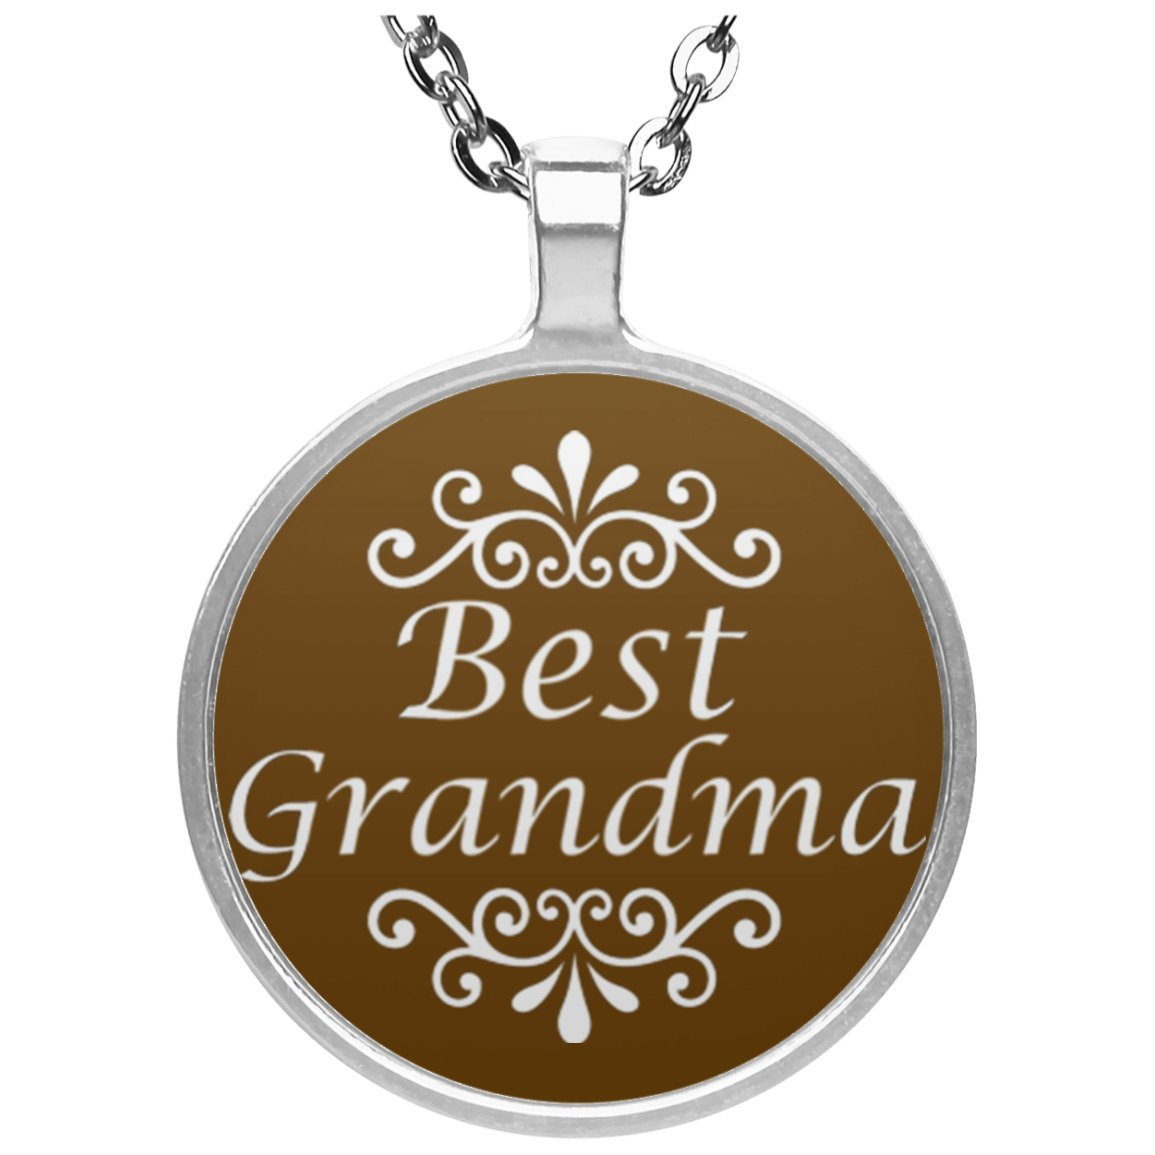 Best grandma circle pendant necklace great gift for grandma best grandma circle pendant necklace great gift for grandma for grandparents only aloadofball Image collections